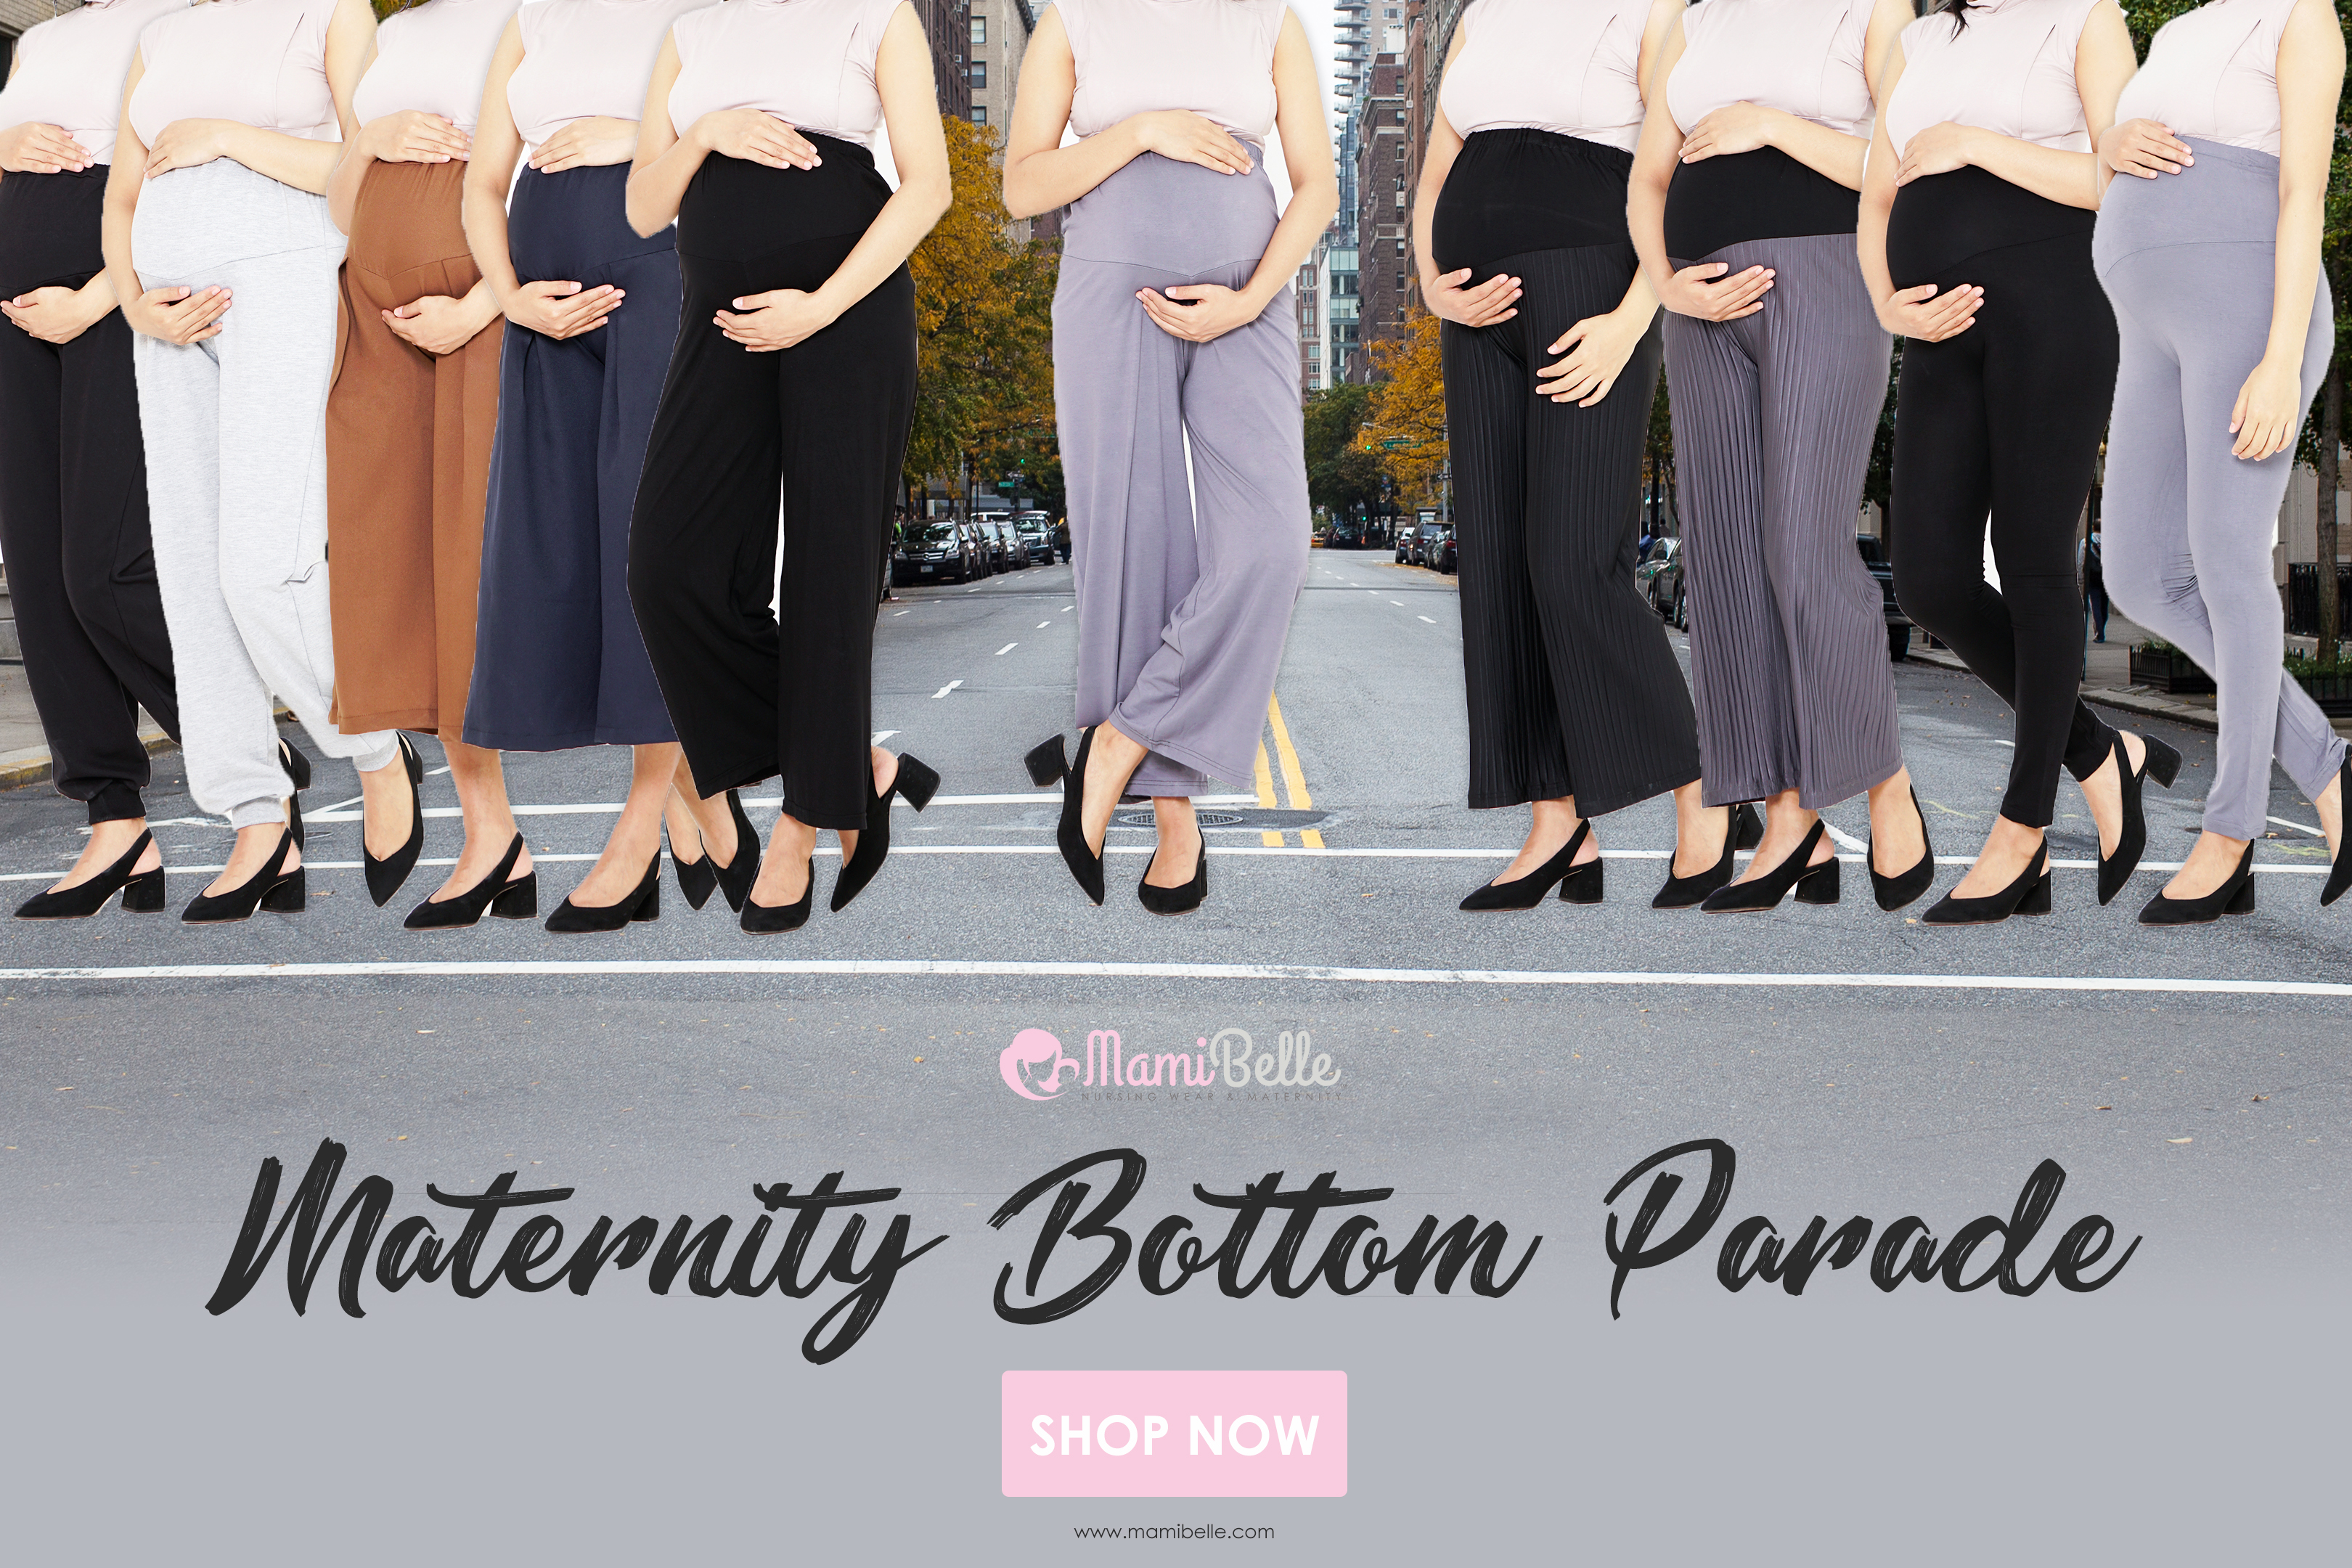 Maternity Bottom Parade is Here! image